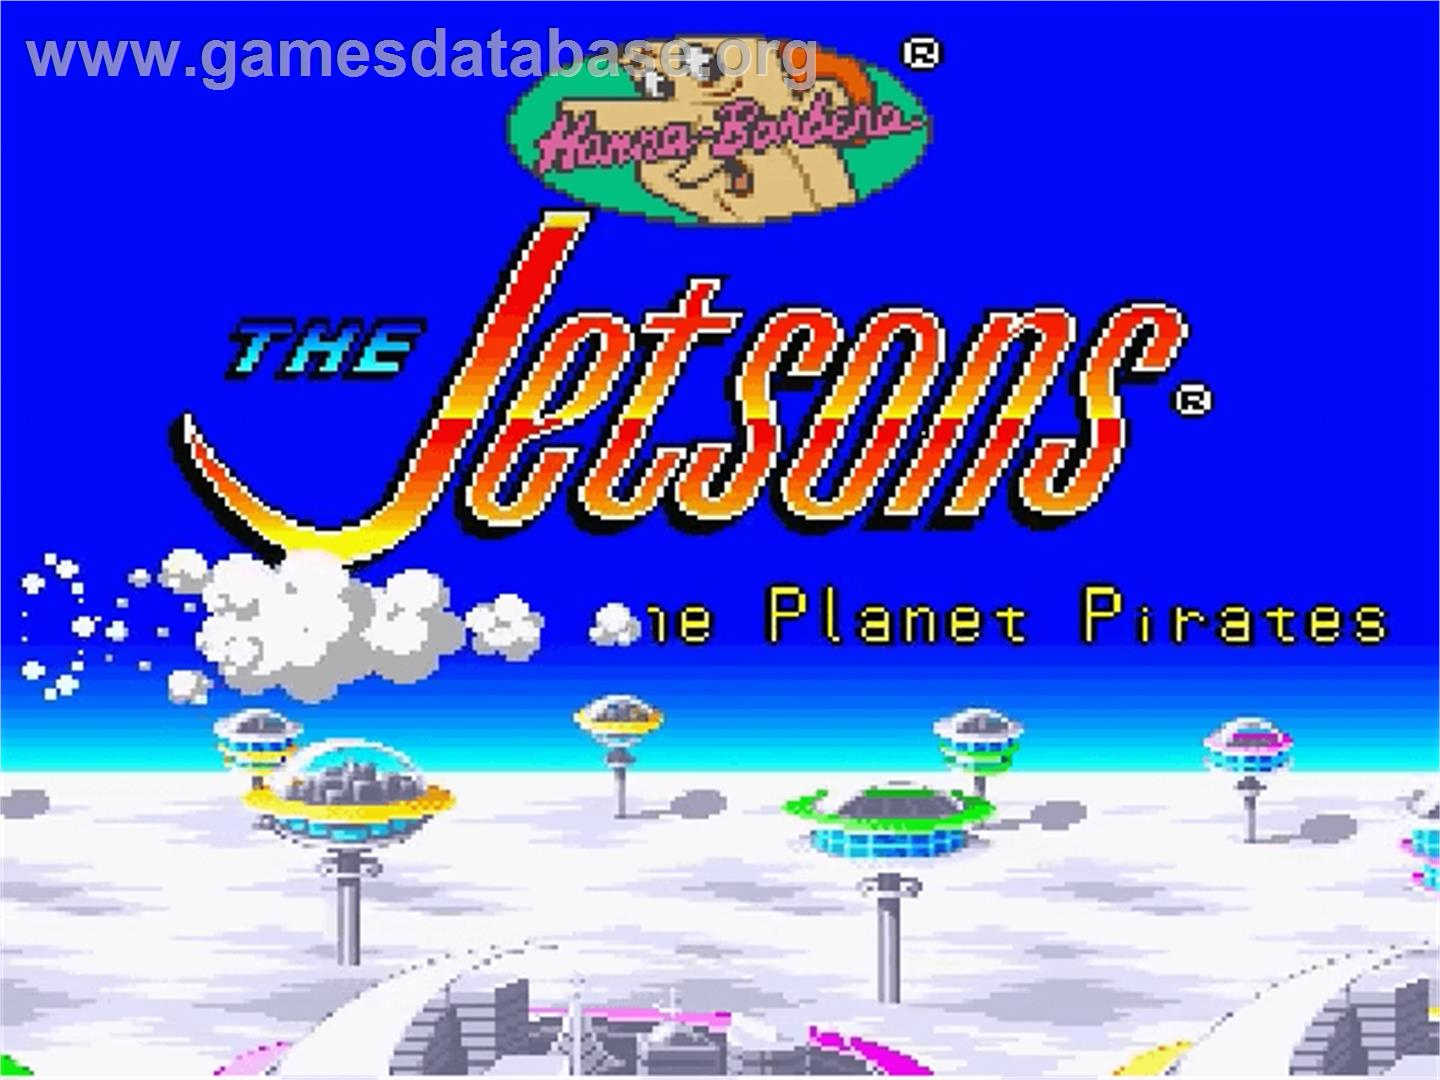 The Jetsons: Invasion of the Planet Pirates - Nintendo SNES - Artwork - Title Screen